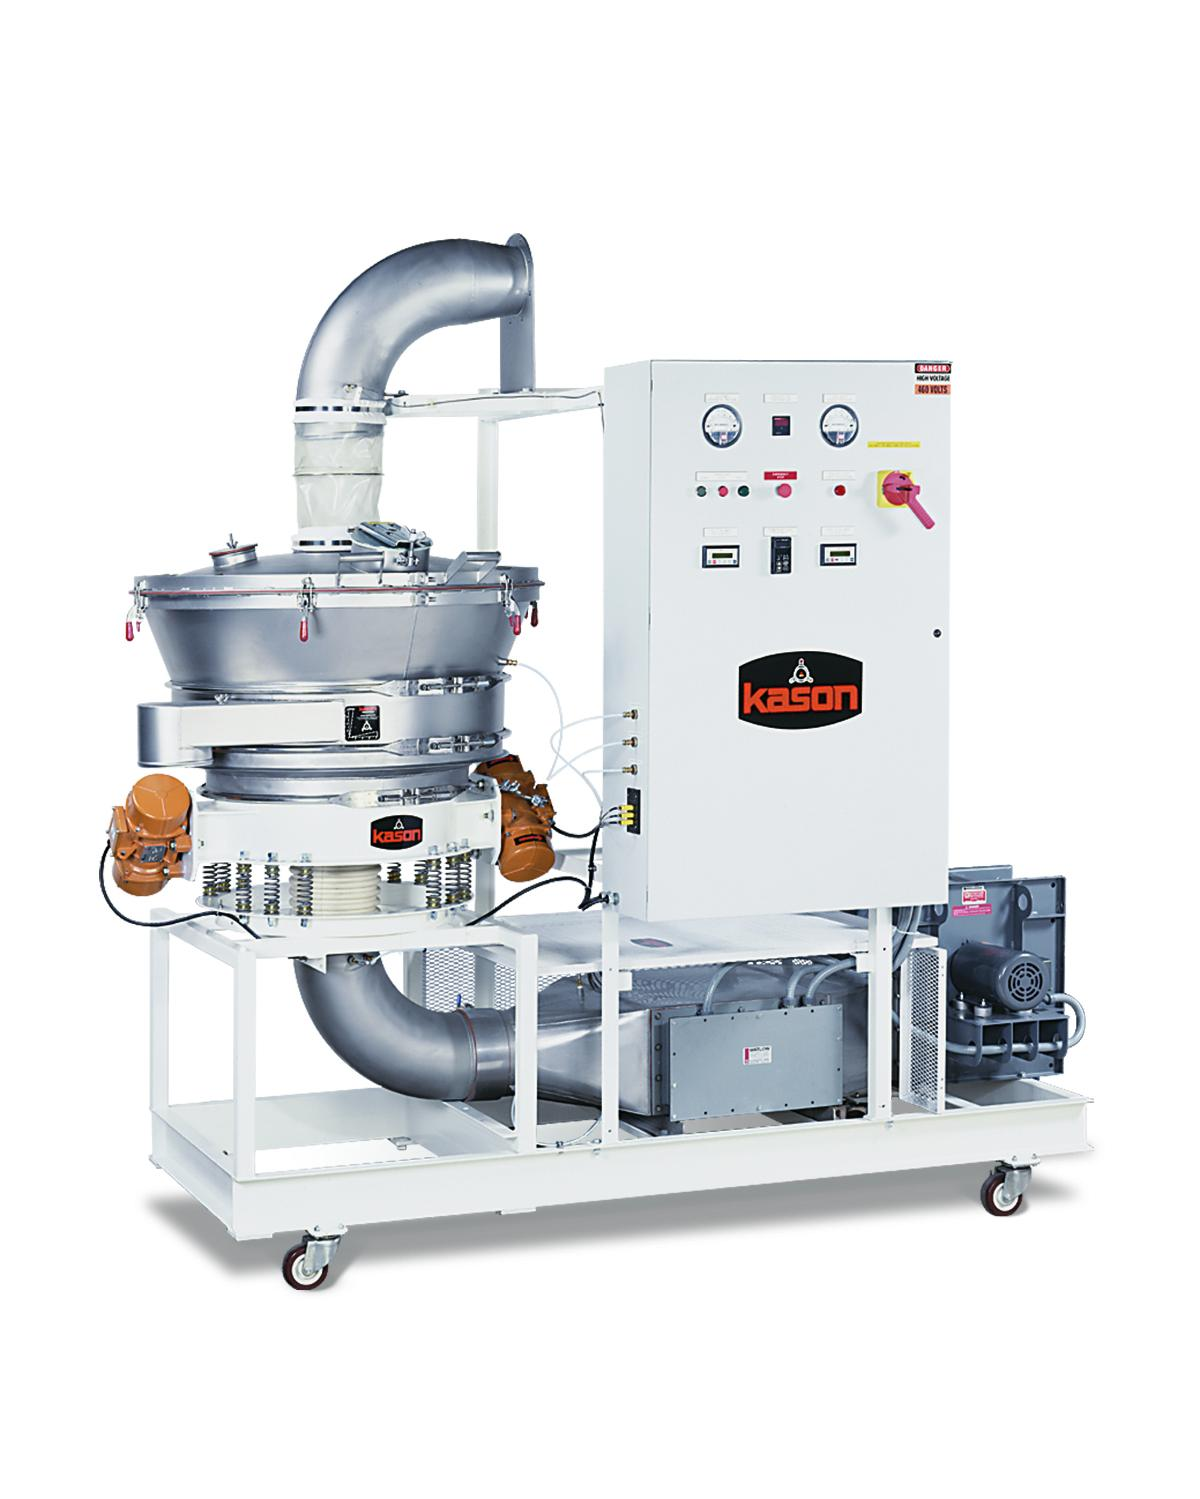 Kason's fluid bed agglomerating system combines a vibrating circular fluid bed processor with integral agglomeration spray system, air heater, blower, and controller on a castor-mounted support stand